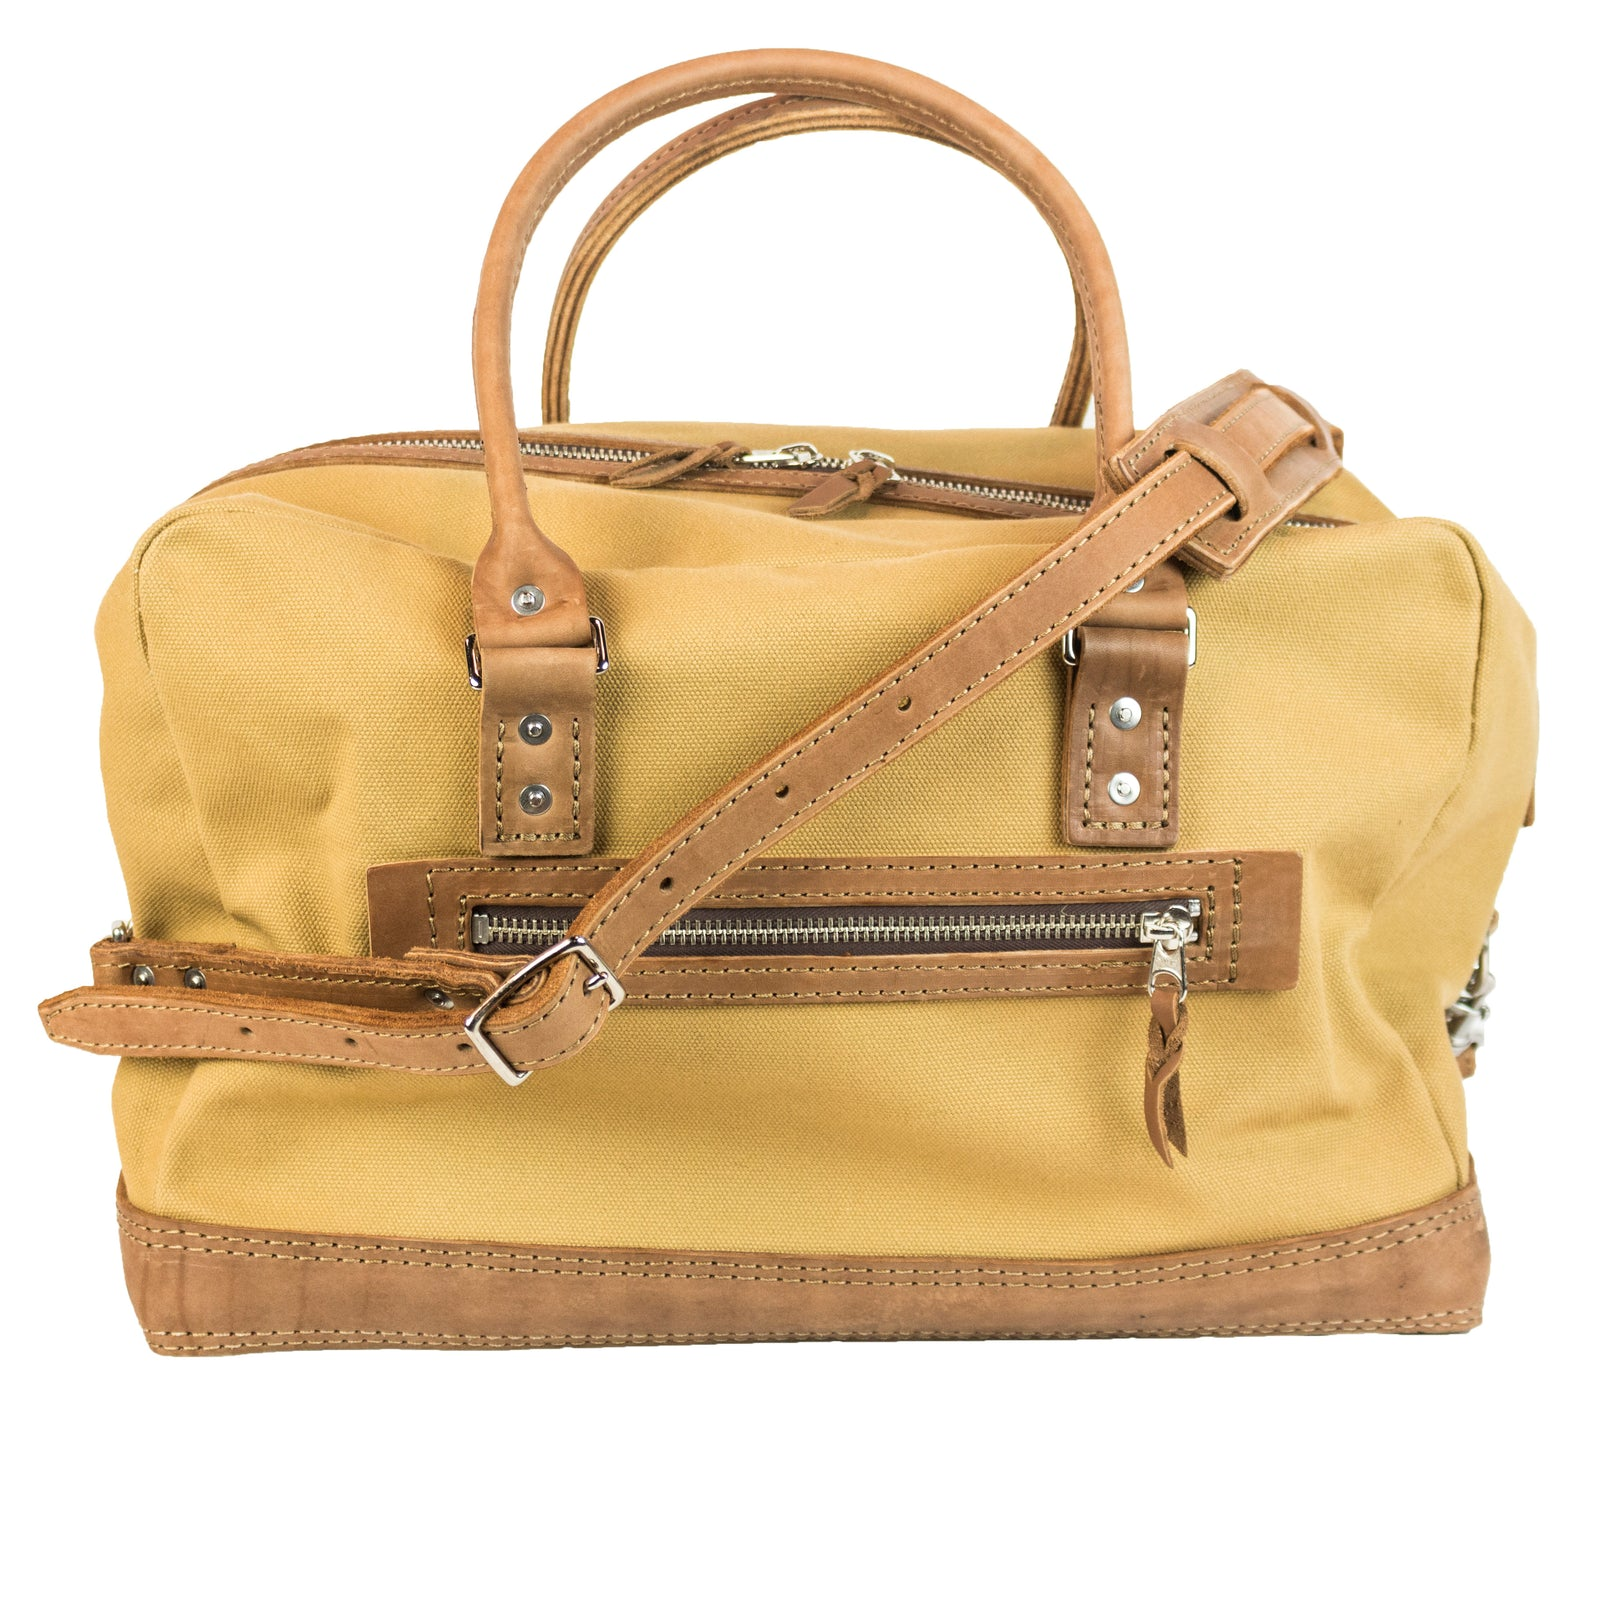 Freight Duffle | Light Brown on Khaki | Nickel Hardware